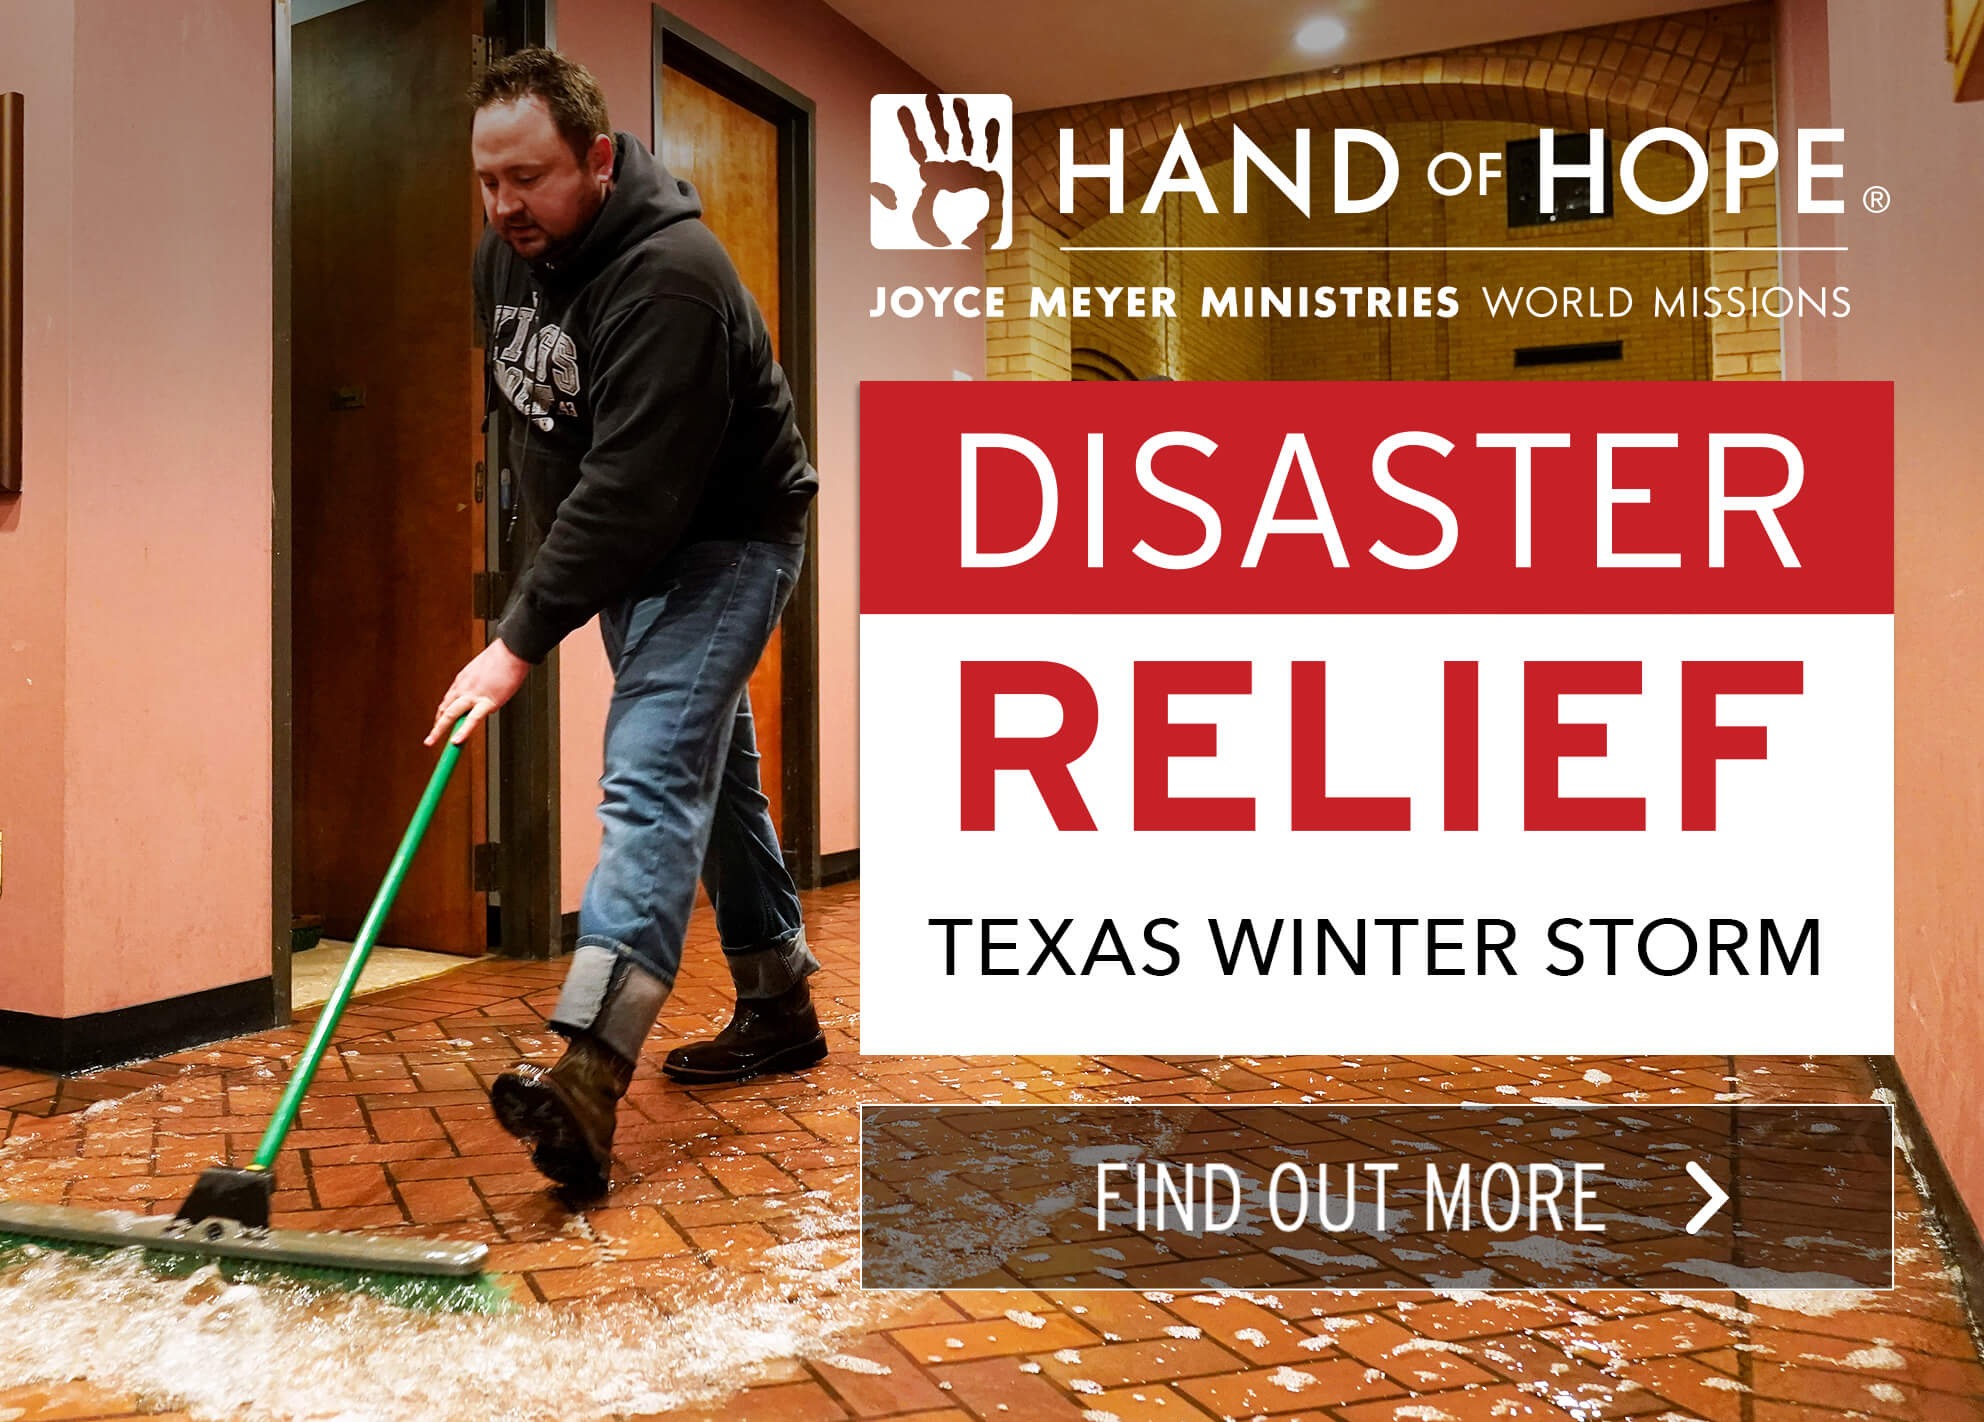 Hand of Hope Disaster Relief Uri